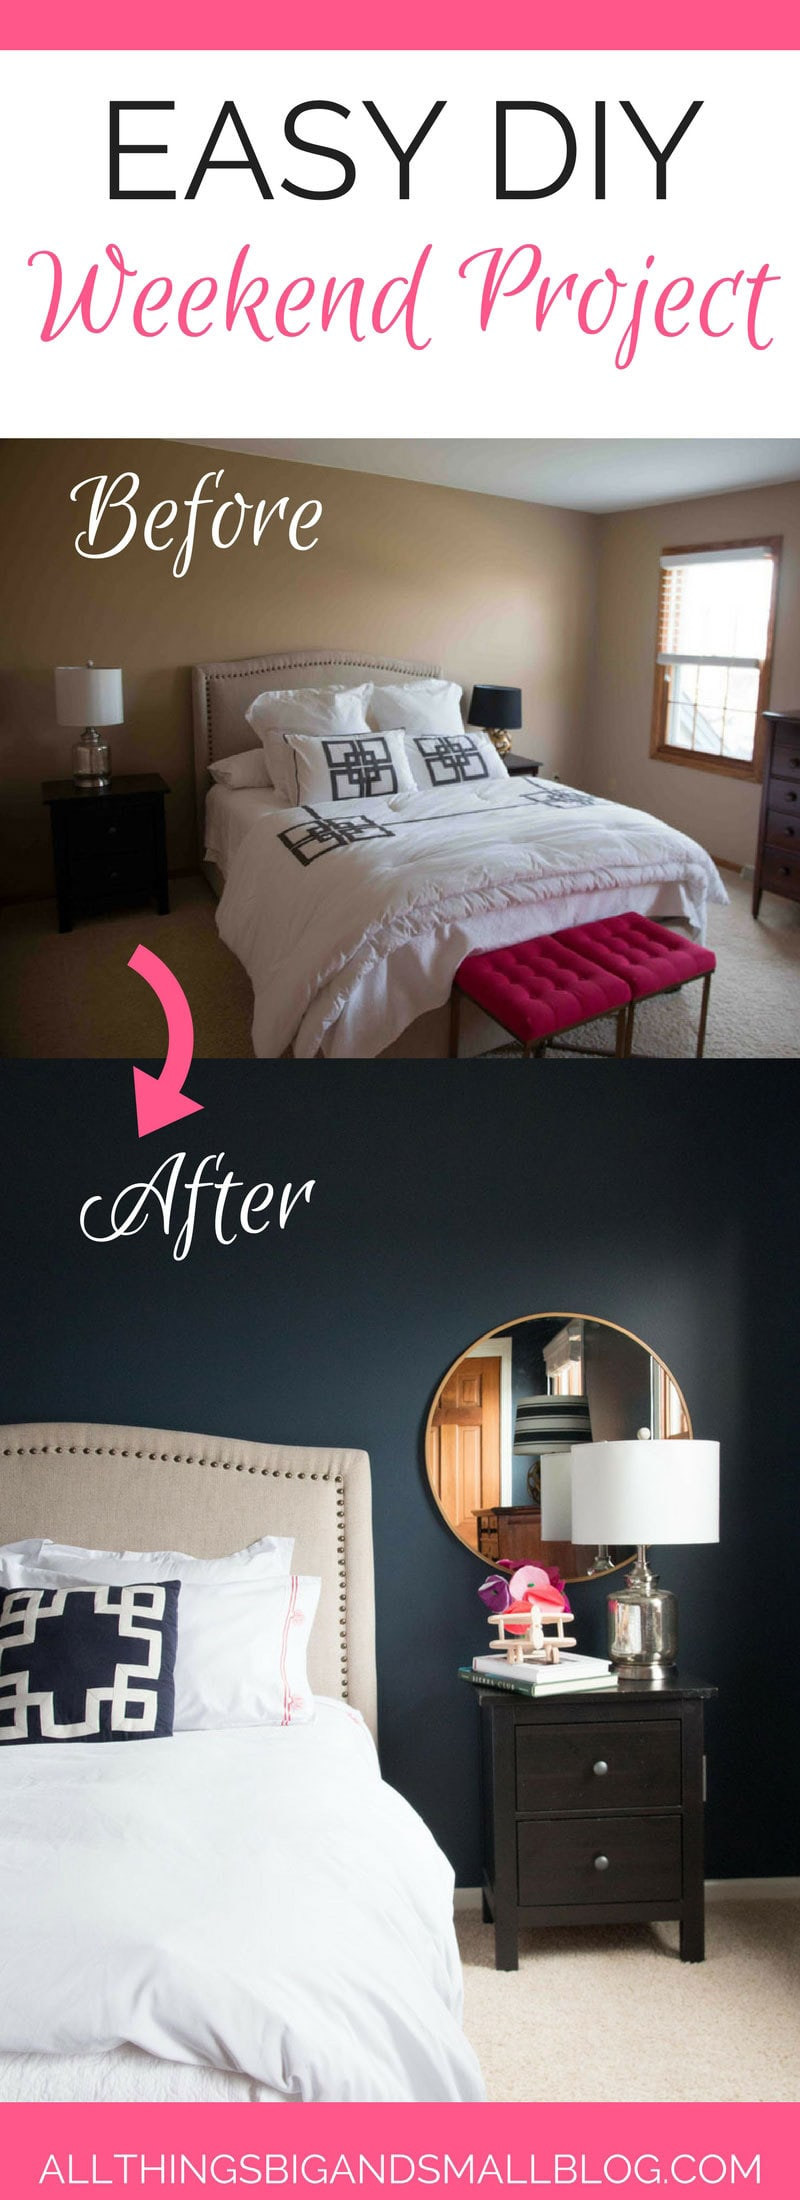 DIY Weekend Project | Guest Room Refresh | All Things Big and Small